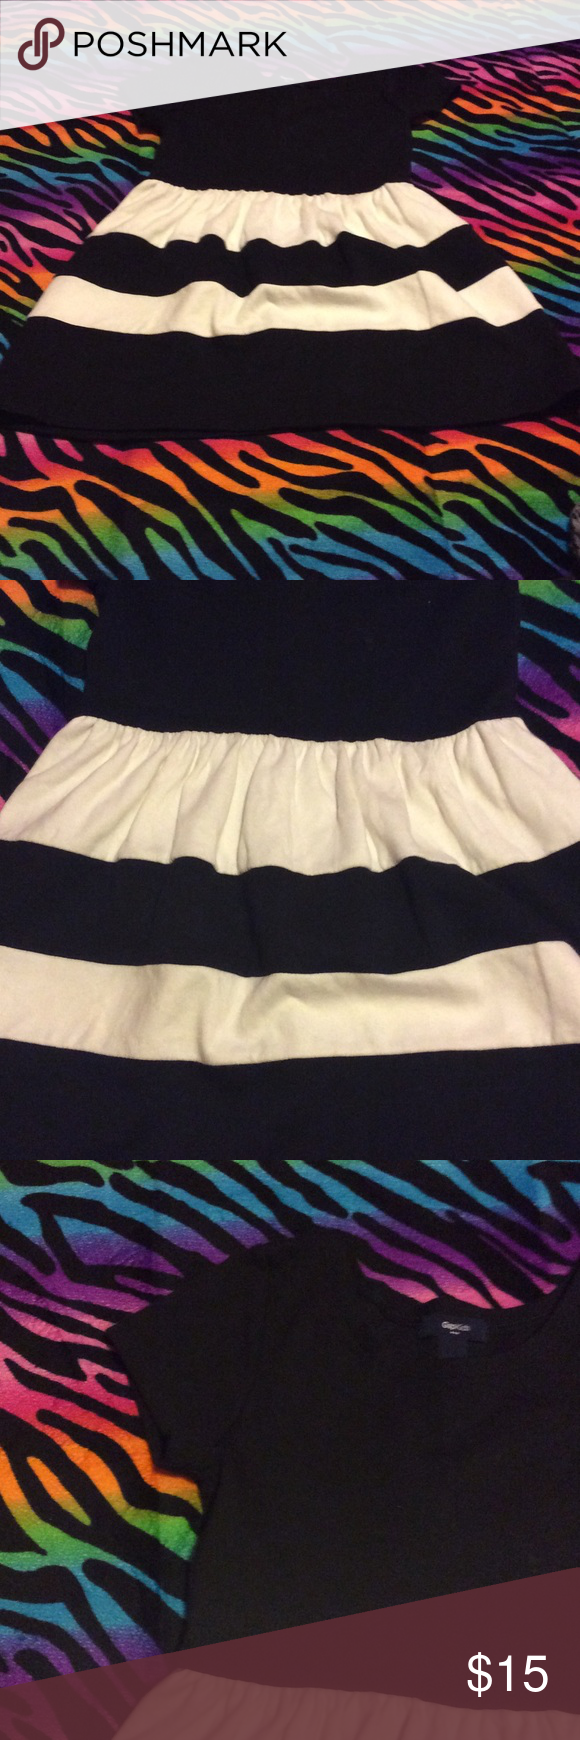 Gap kids dress size 4/5 Size xs 4/5 no stains or holes. GAP Dresses Casual